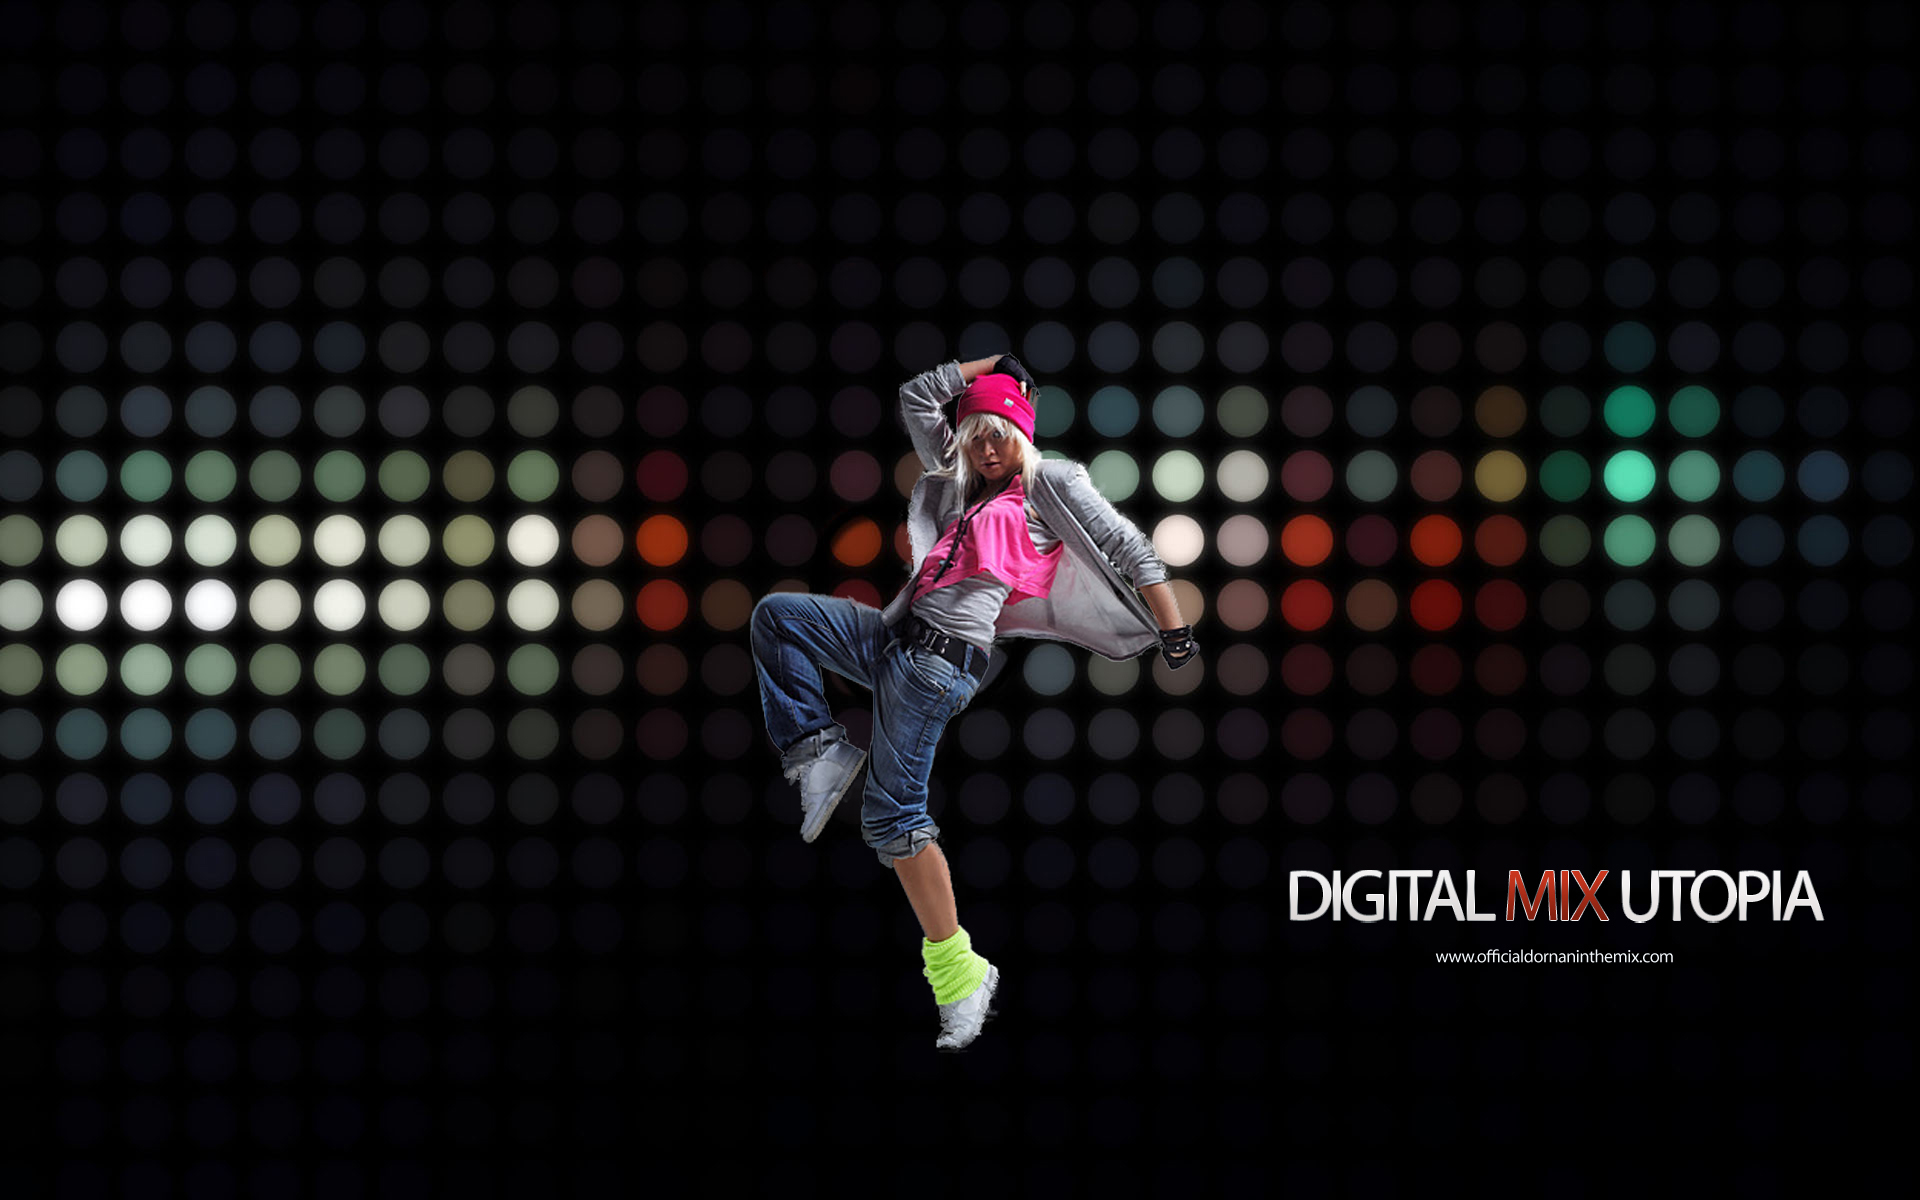 Digital mix utopia 04 full hd wallpaper and background for House music dance